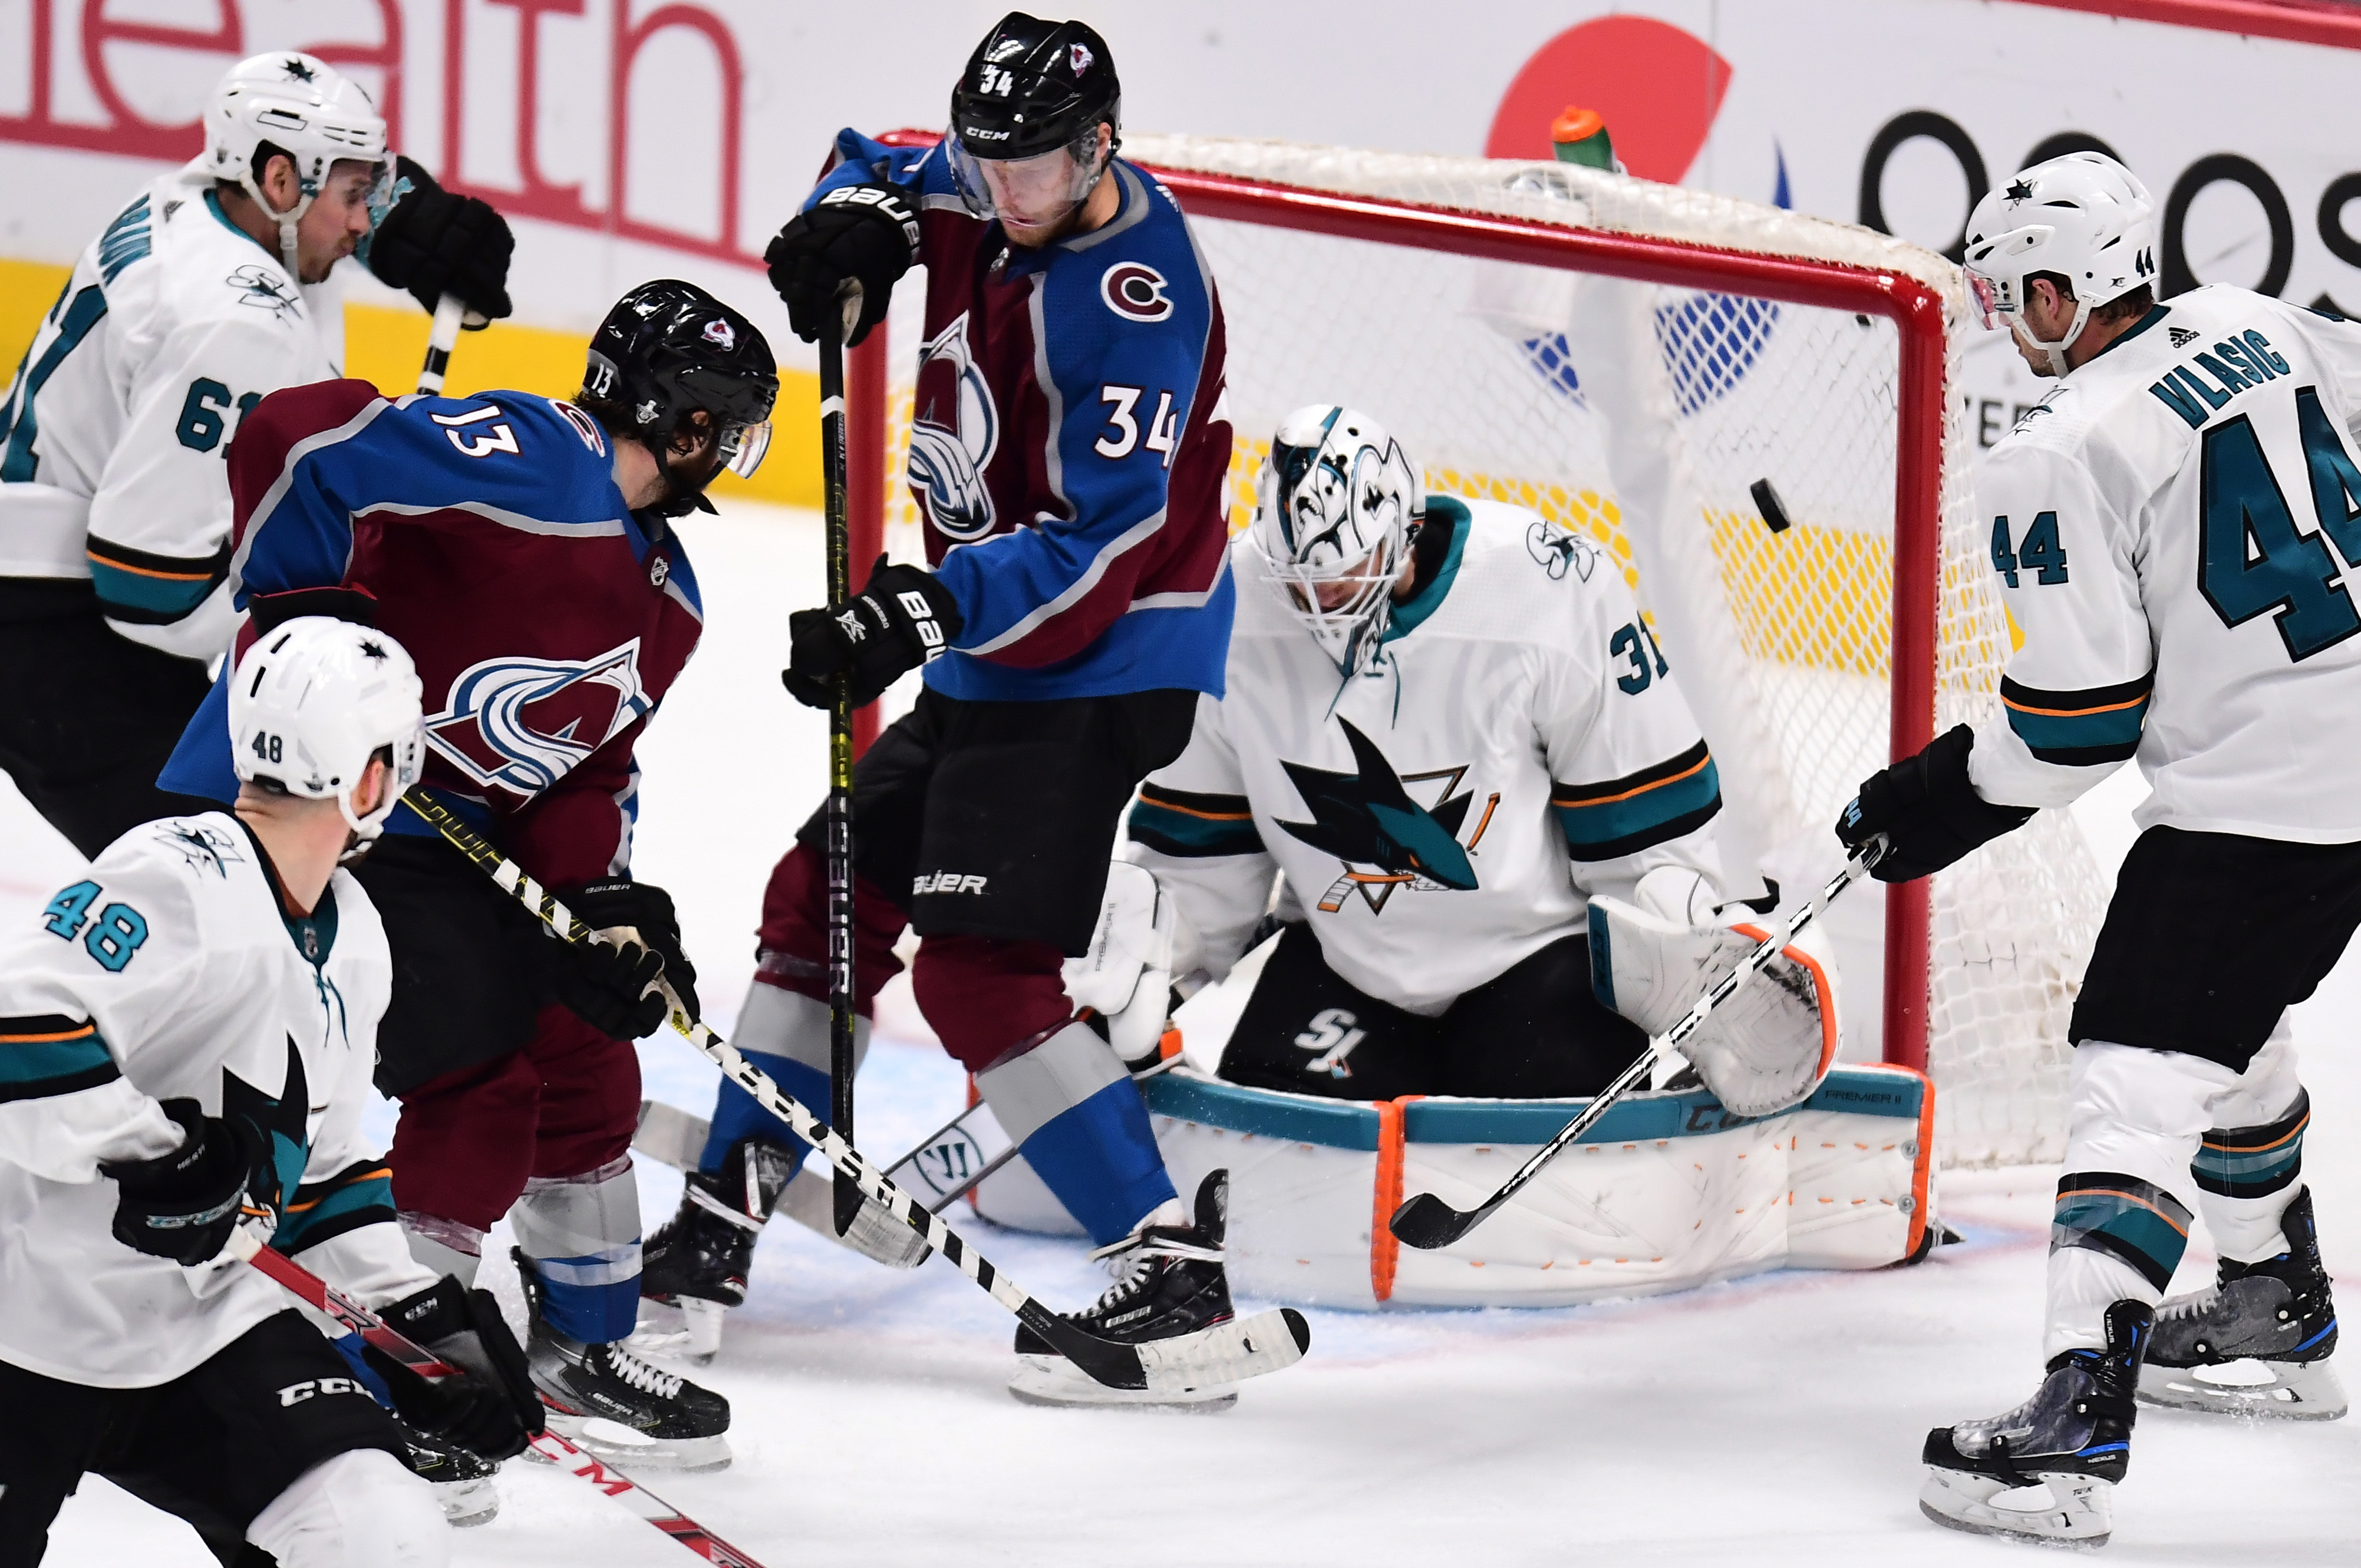 San Jose Sharks goaltender Martin Jones (31) and San Jose Sharks defenseman Marc-Edouard Vlasic (44) defend the net as center Alexander Kerfoot (13) and center Carl Soderberg (34) attempt to score in the third period in game three of the second round of t